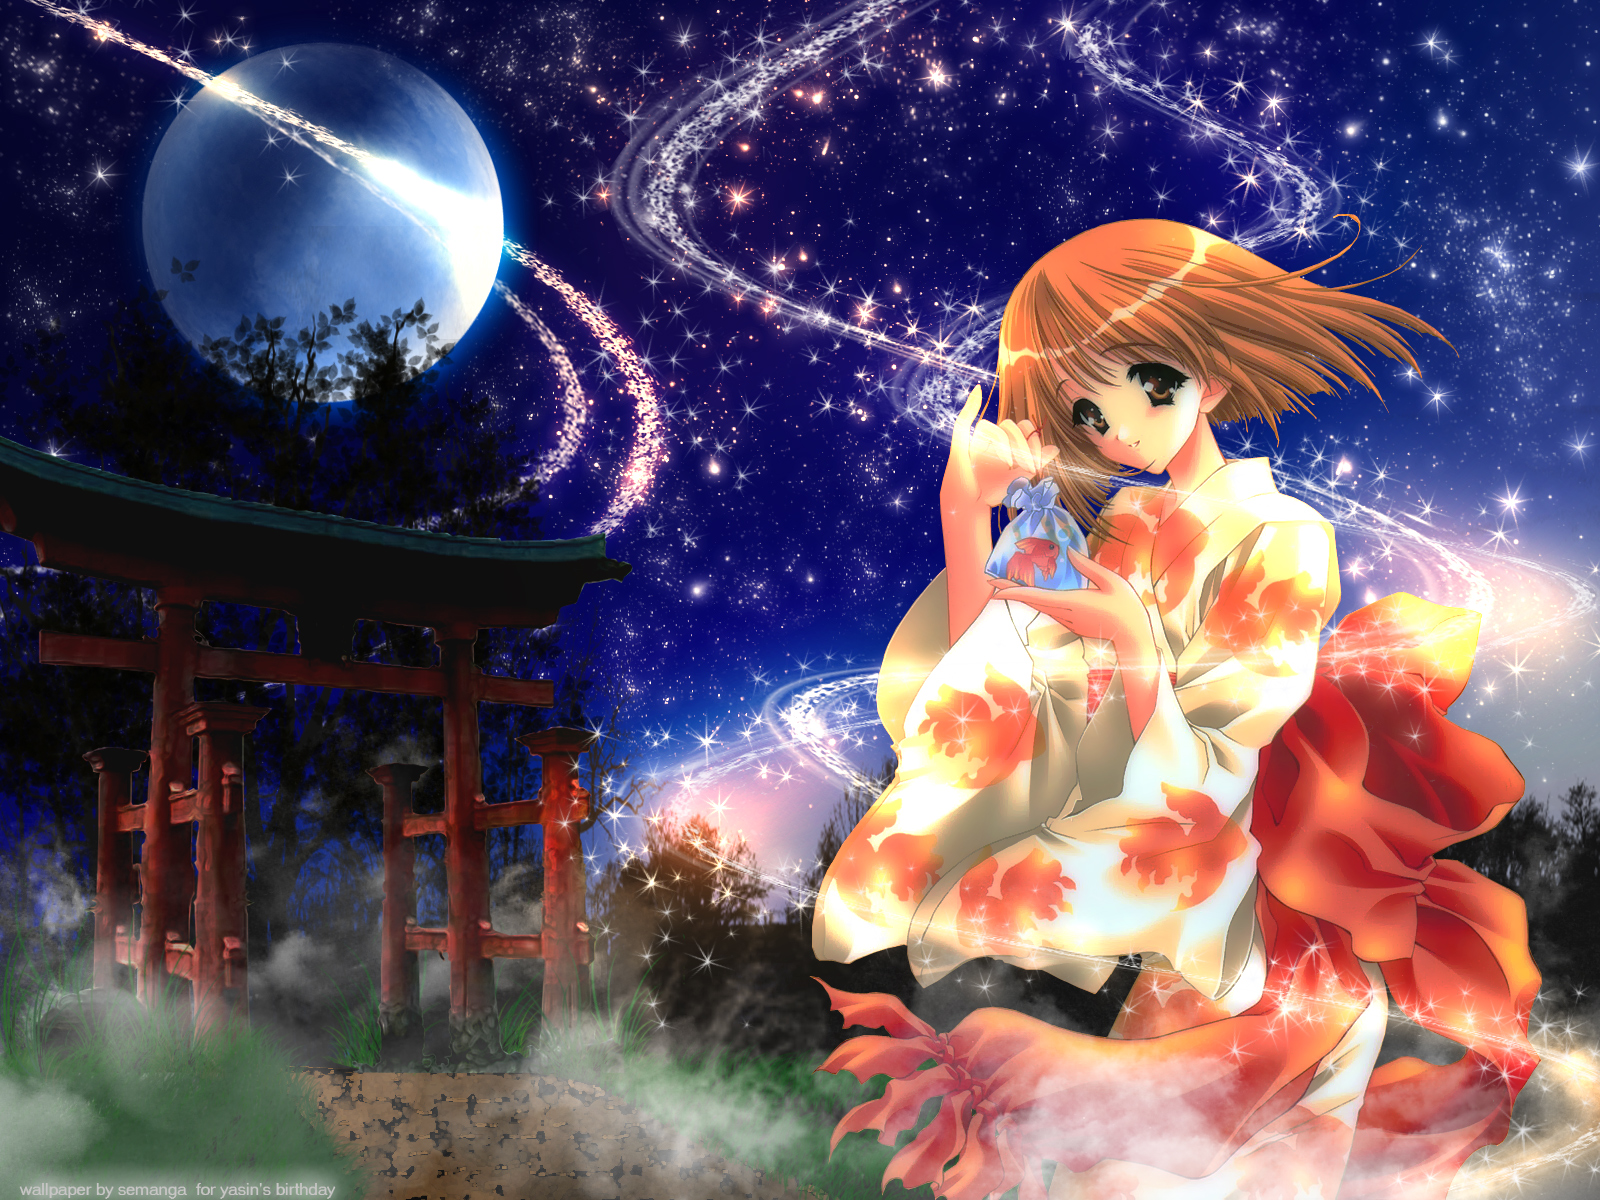 Sakura_Shaoran images Anime wallpaper HD wallpaper and background